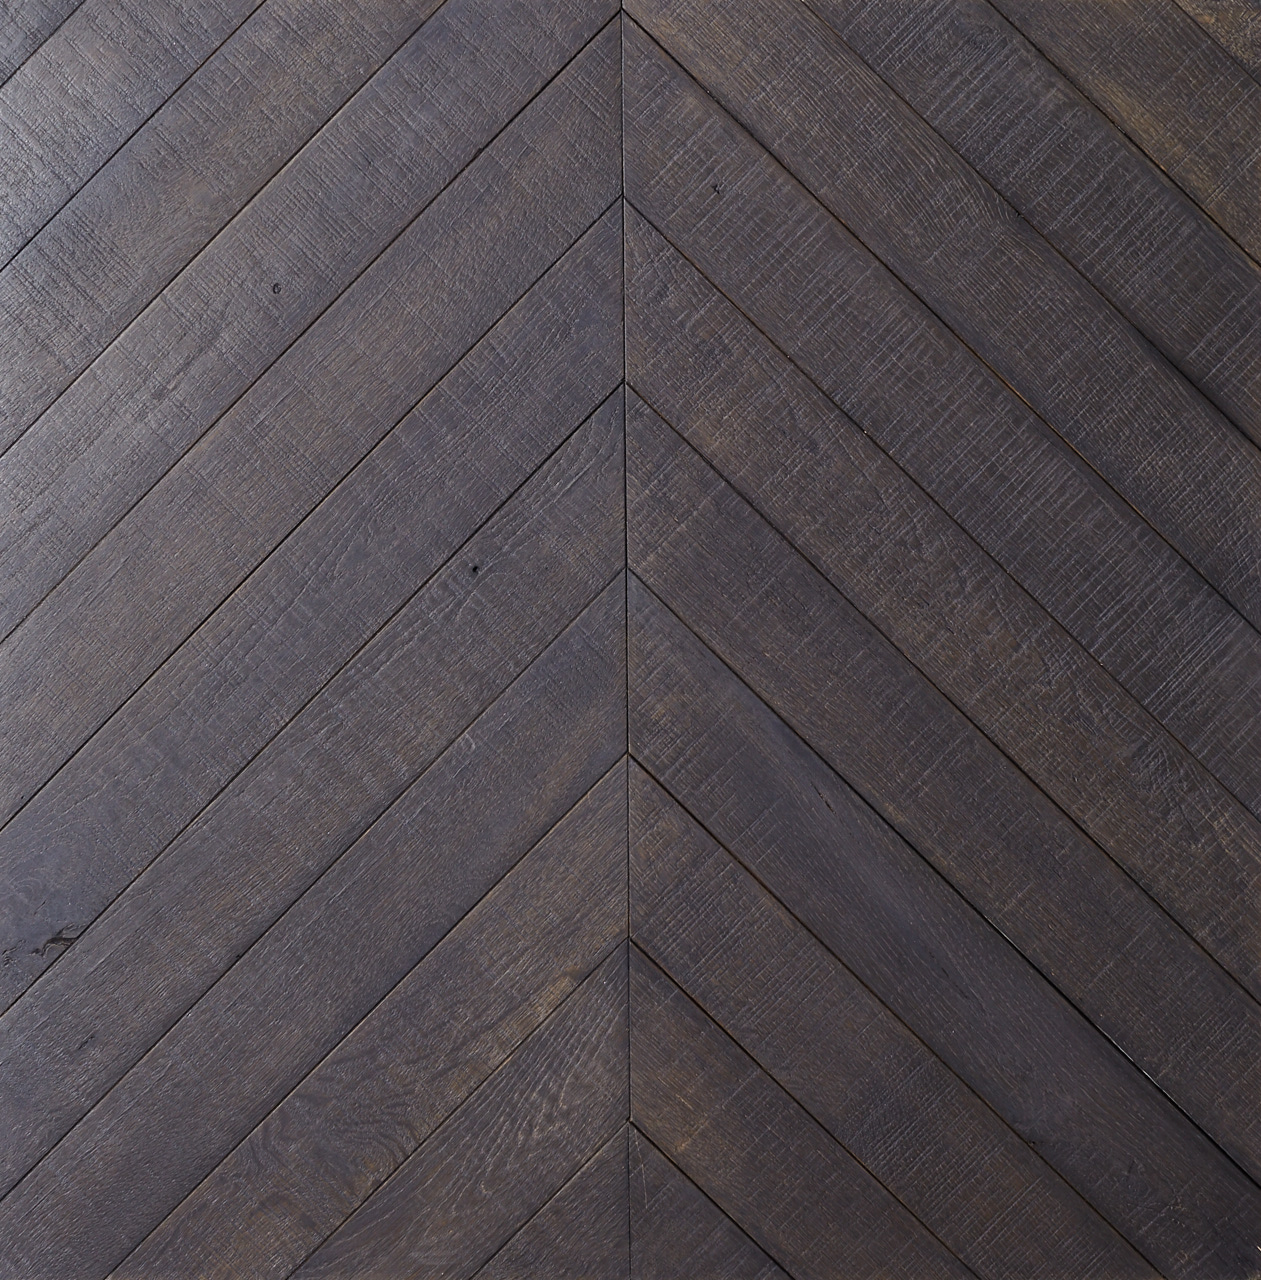 Mayfair Dark-Chevron.jpg